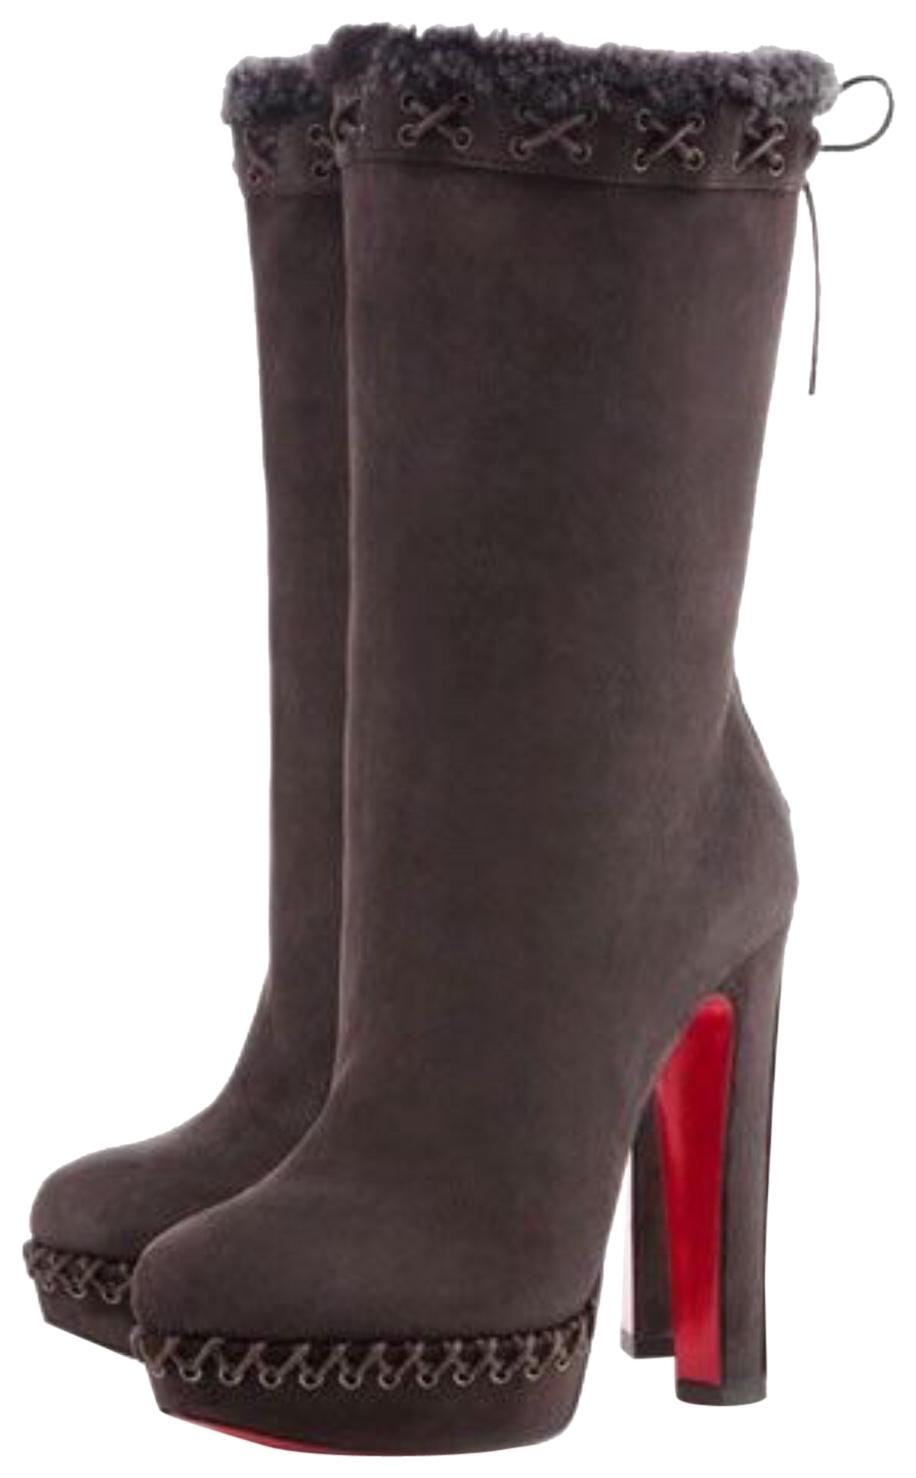 c4643f71beee Christian Christian Christian Louboutin Brown Gray Step N Roll 140 Suede  Shearling Lined Platform Boots Booties Size EU 38 (Approx. US 8) Regular  (M